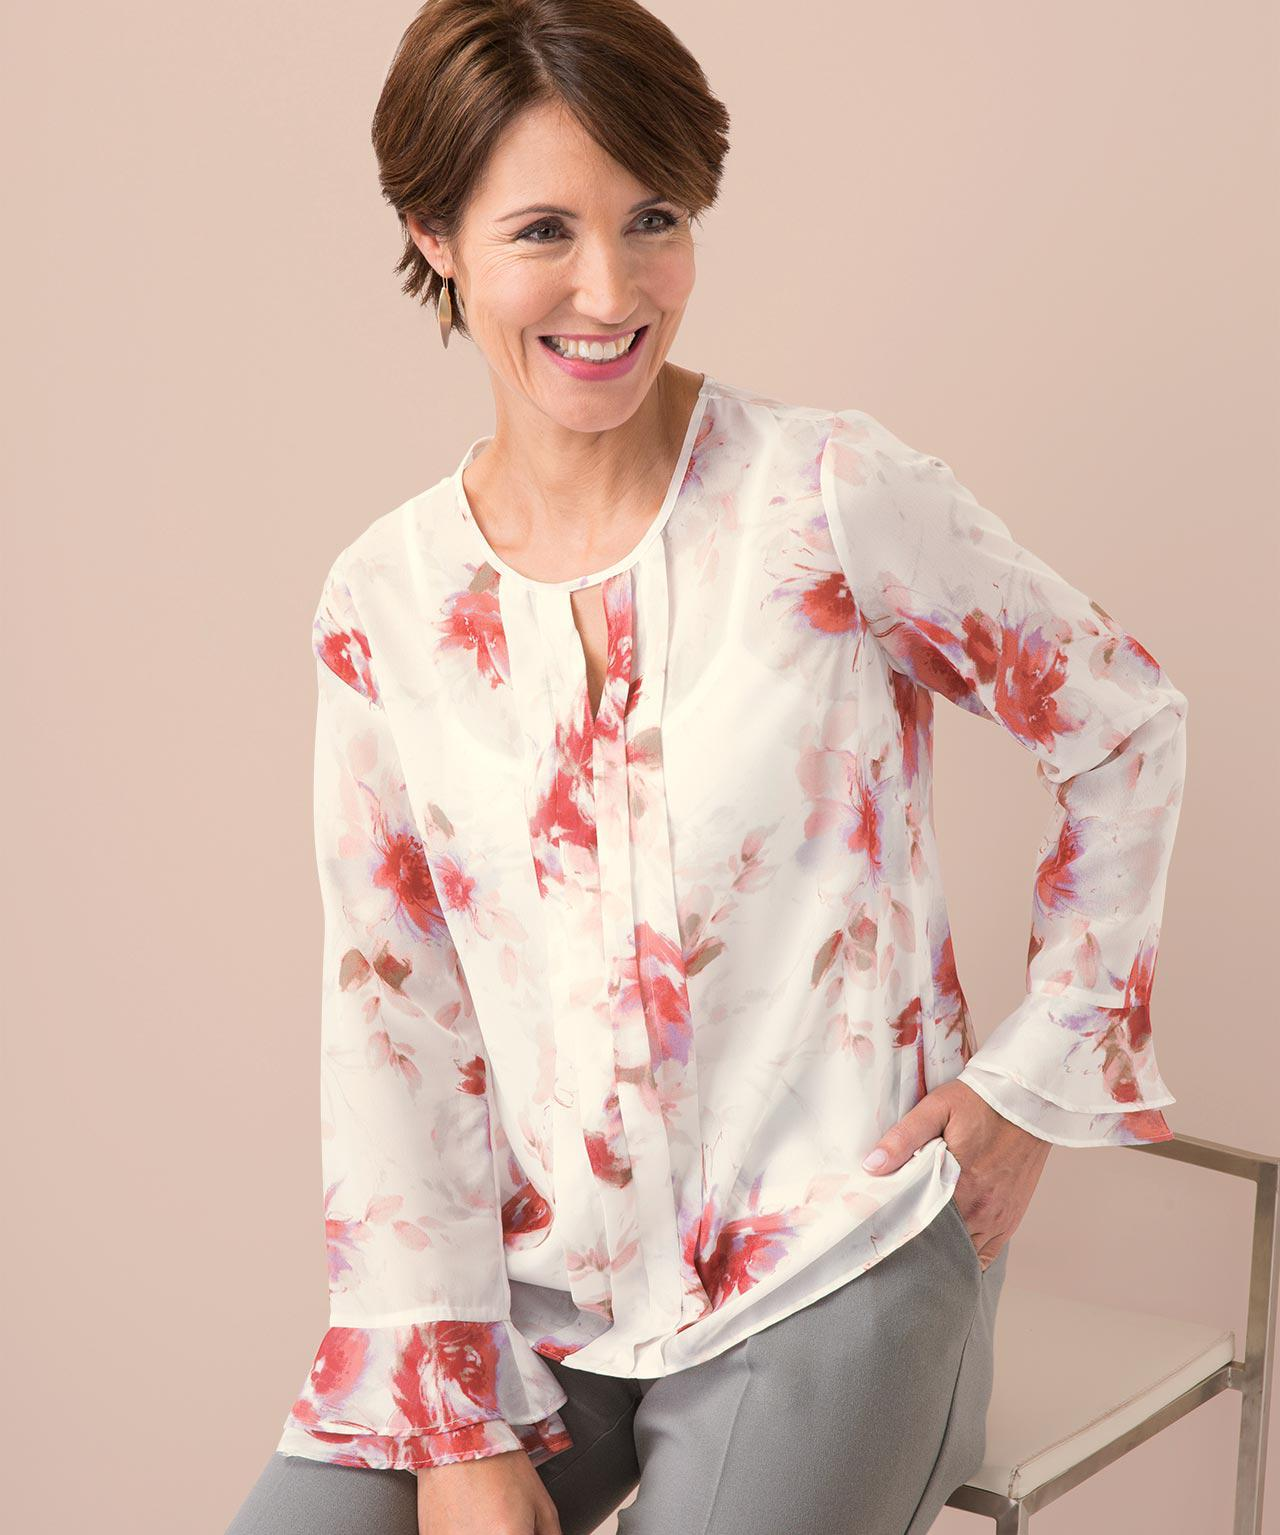 58f0f3feaa DAMART Floral Printed Blouse in Pink - Lyst